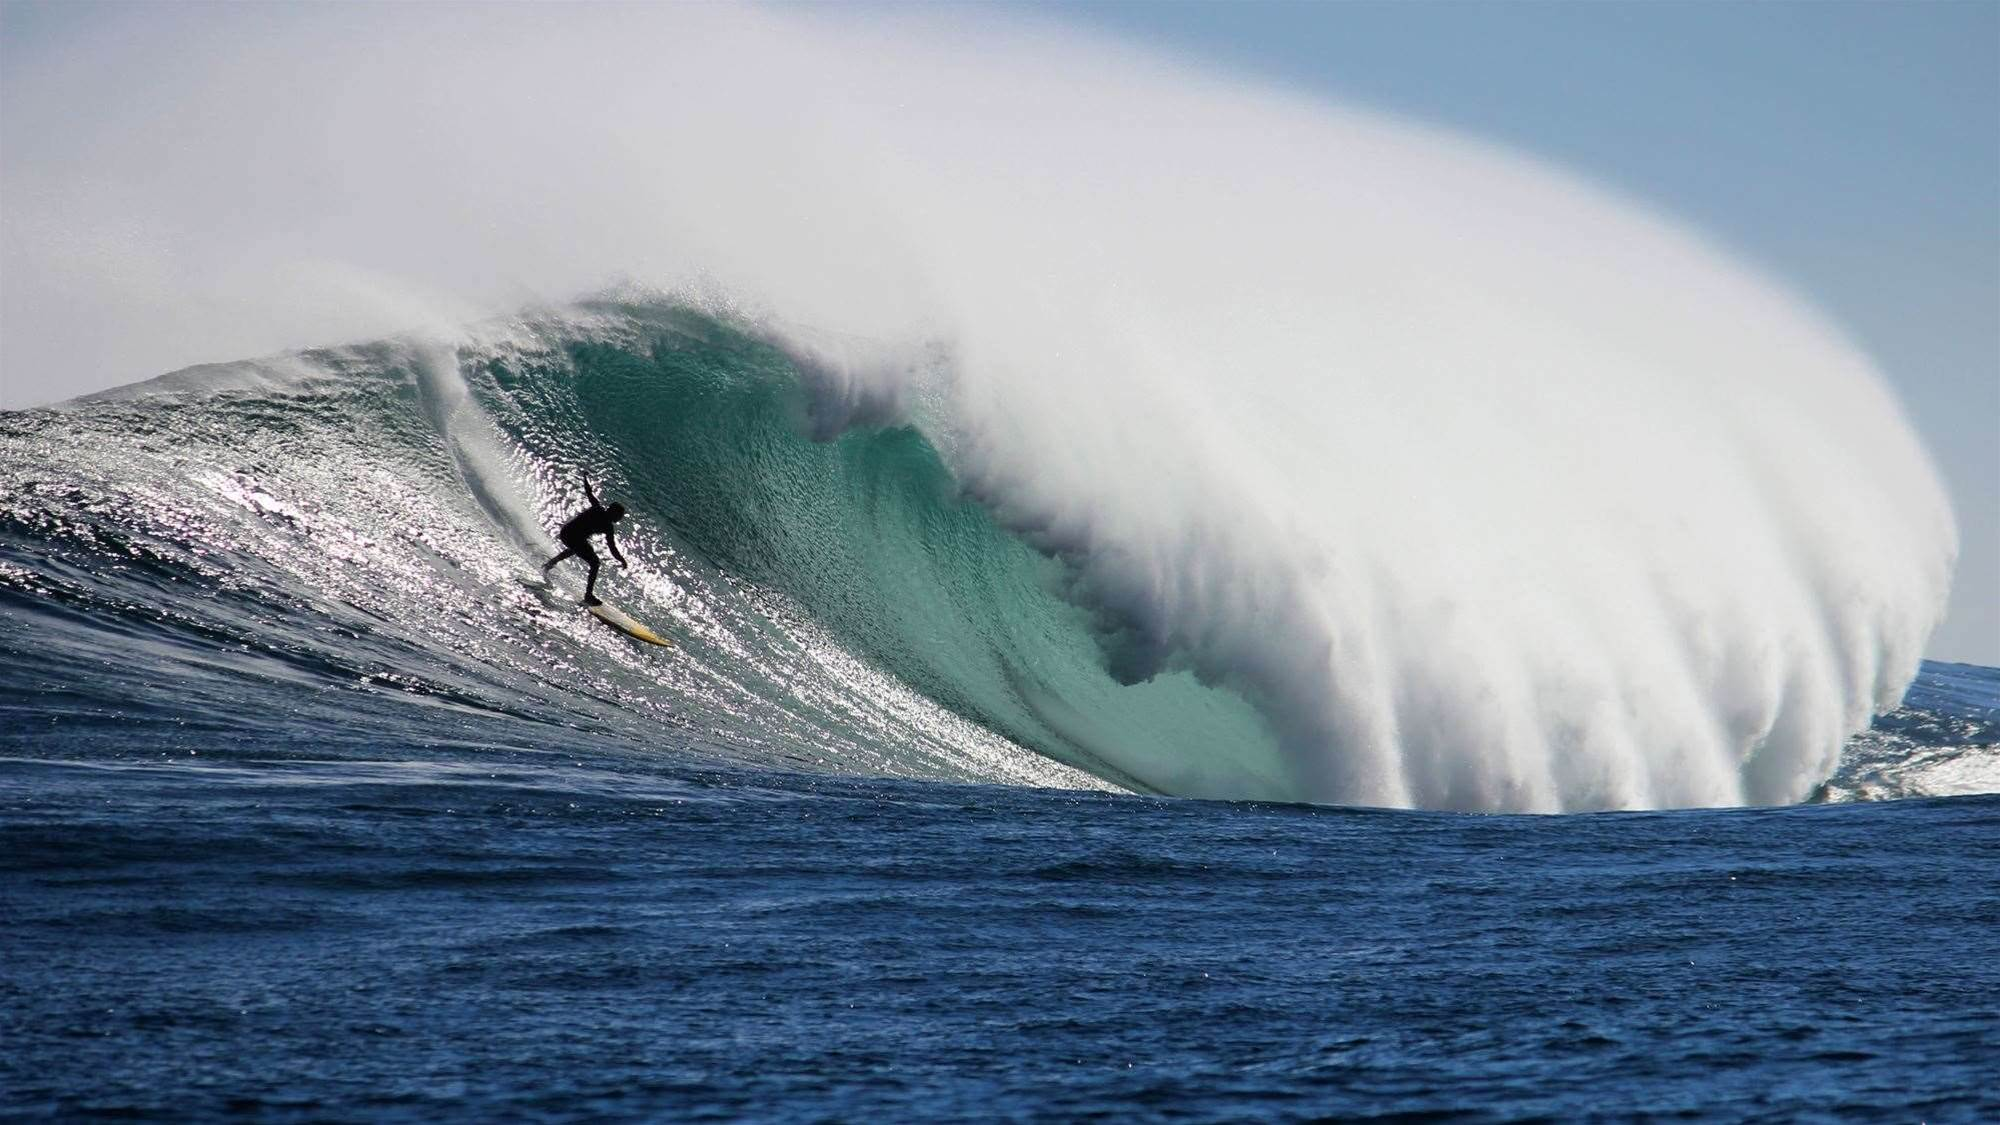 Let's Be Frank - Not Your Average Surf Movie